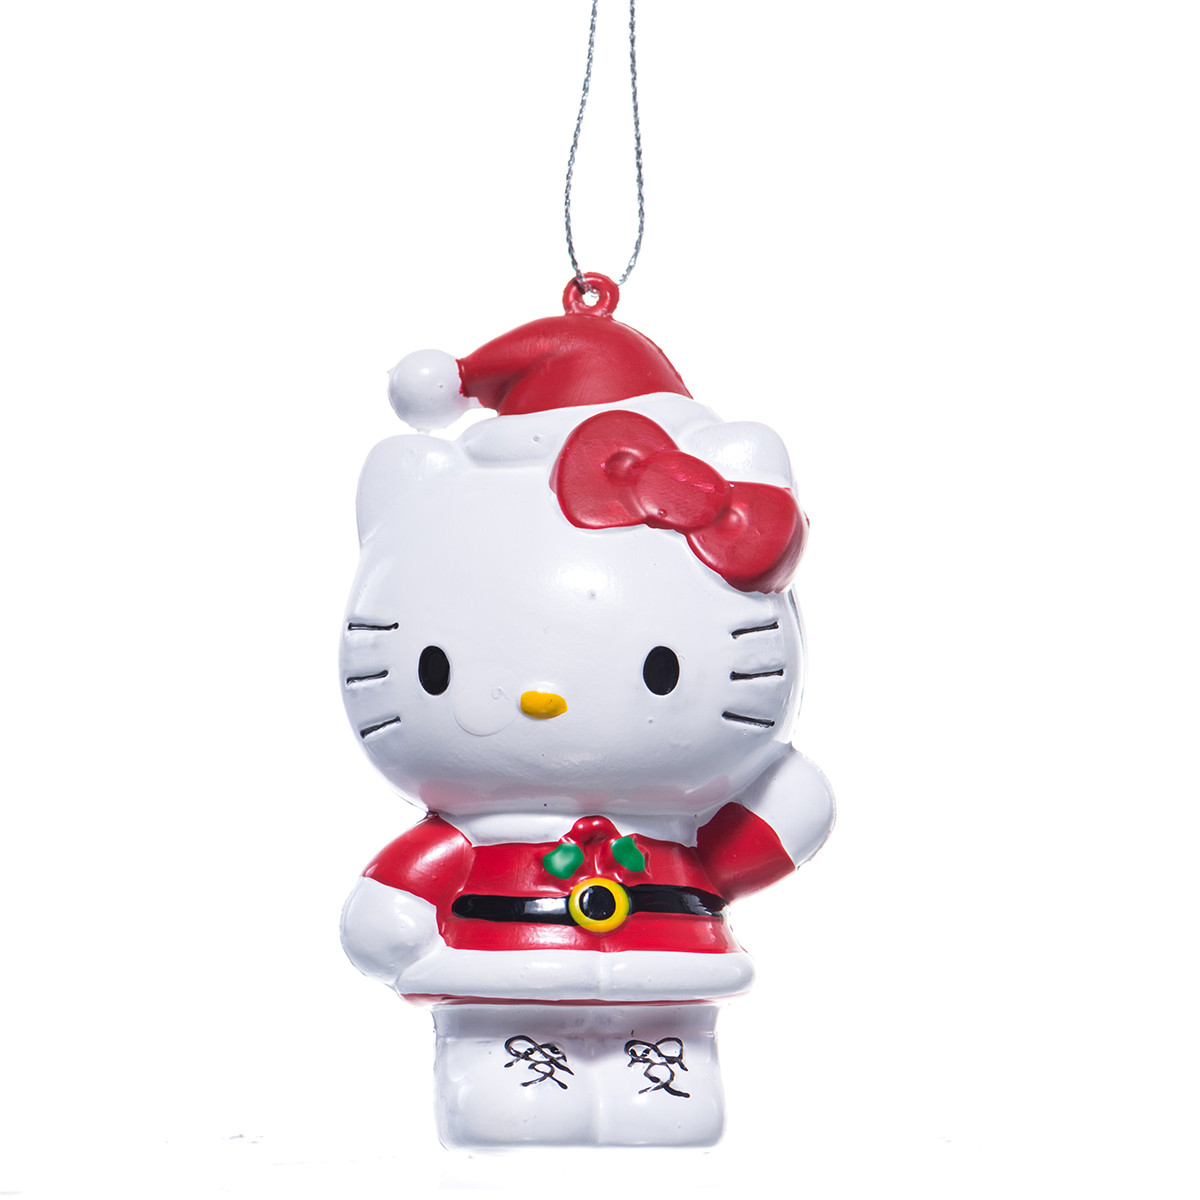 Santa Hello Kitty Christmas Ornament